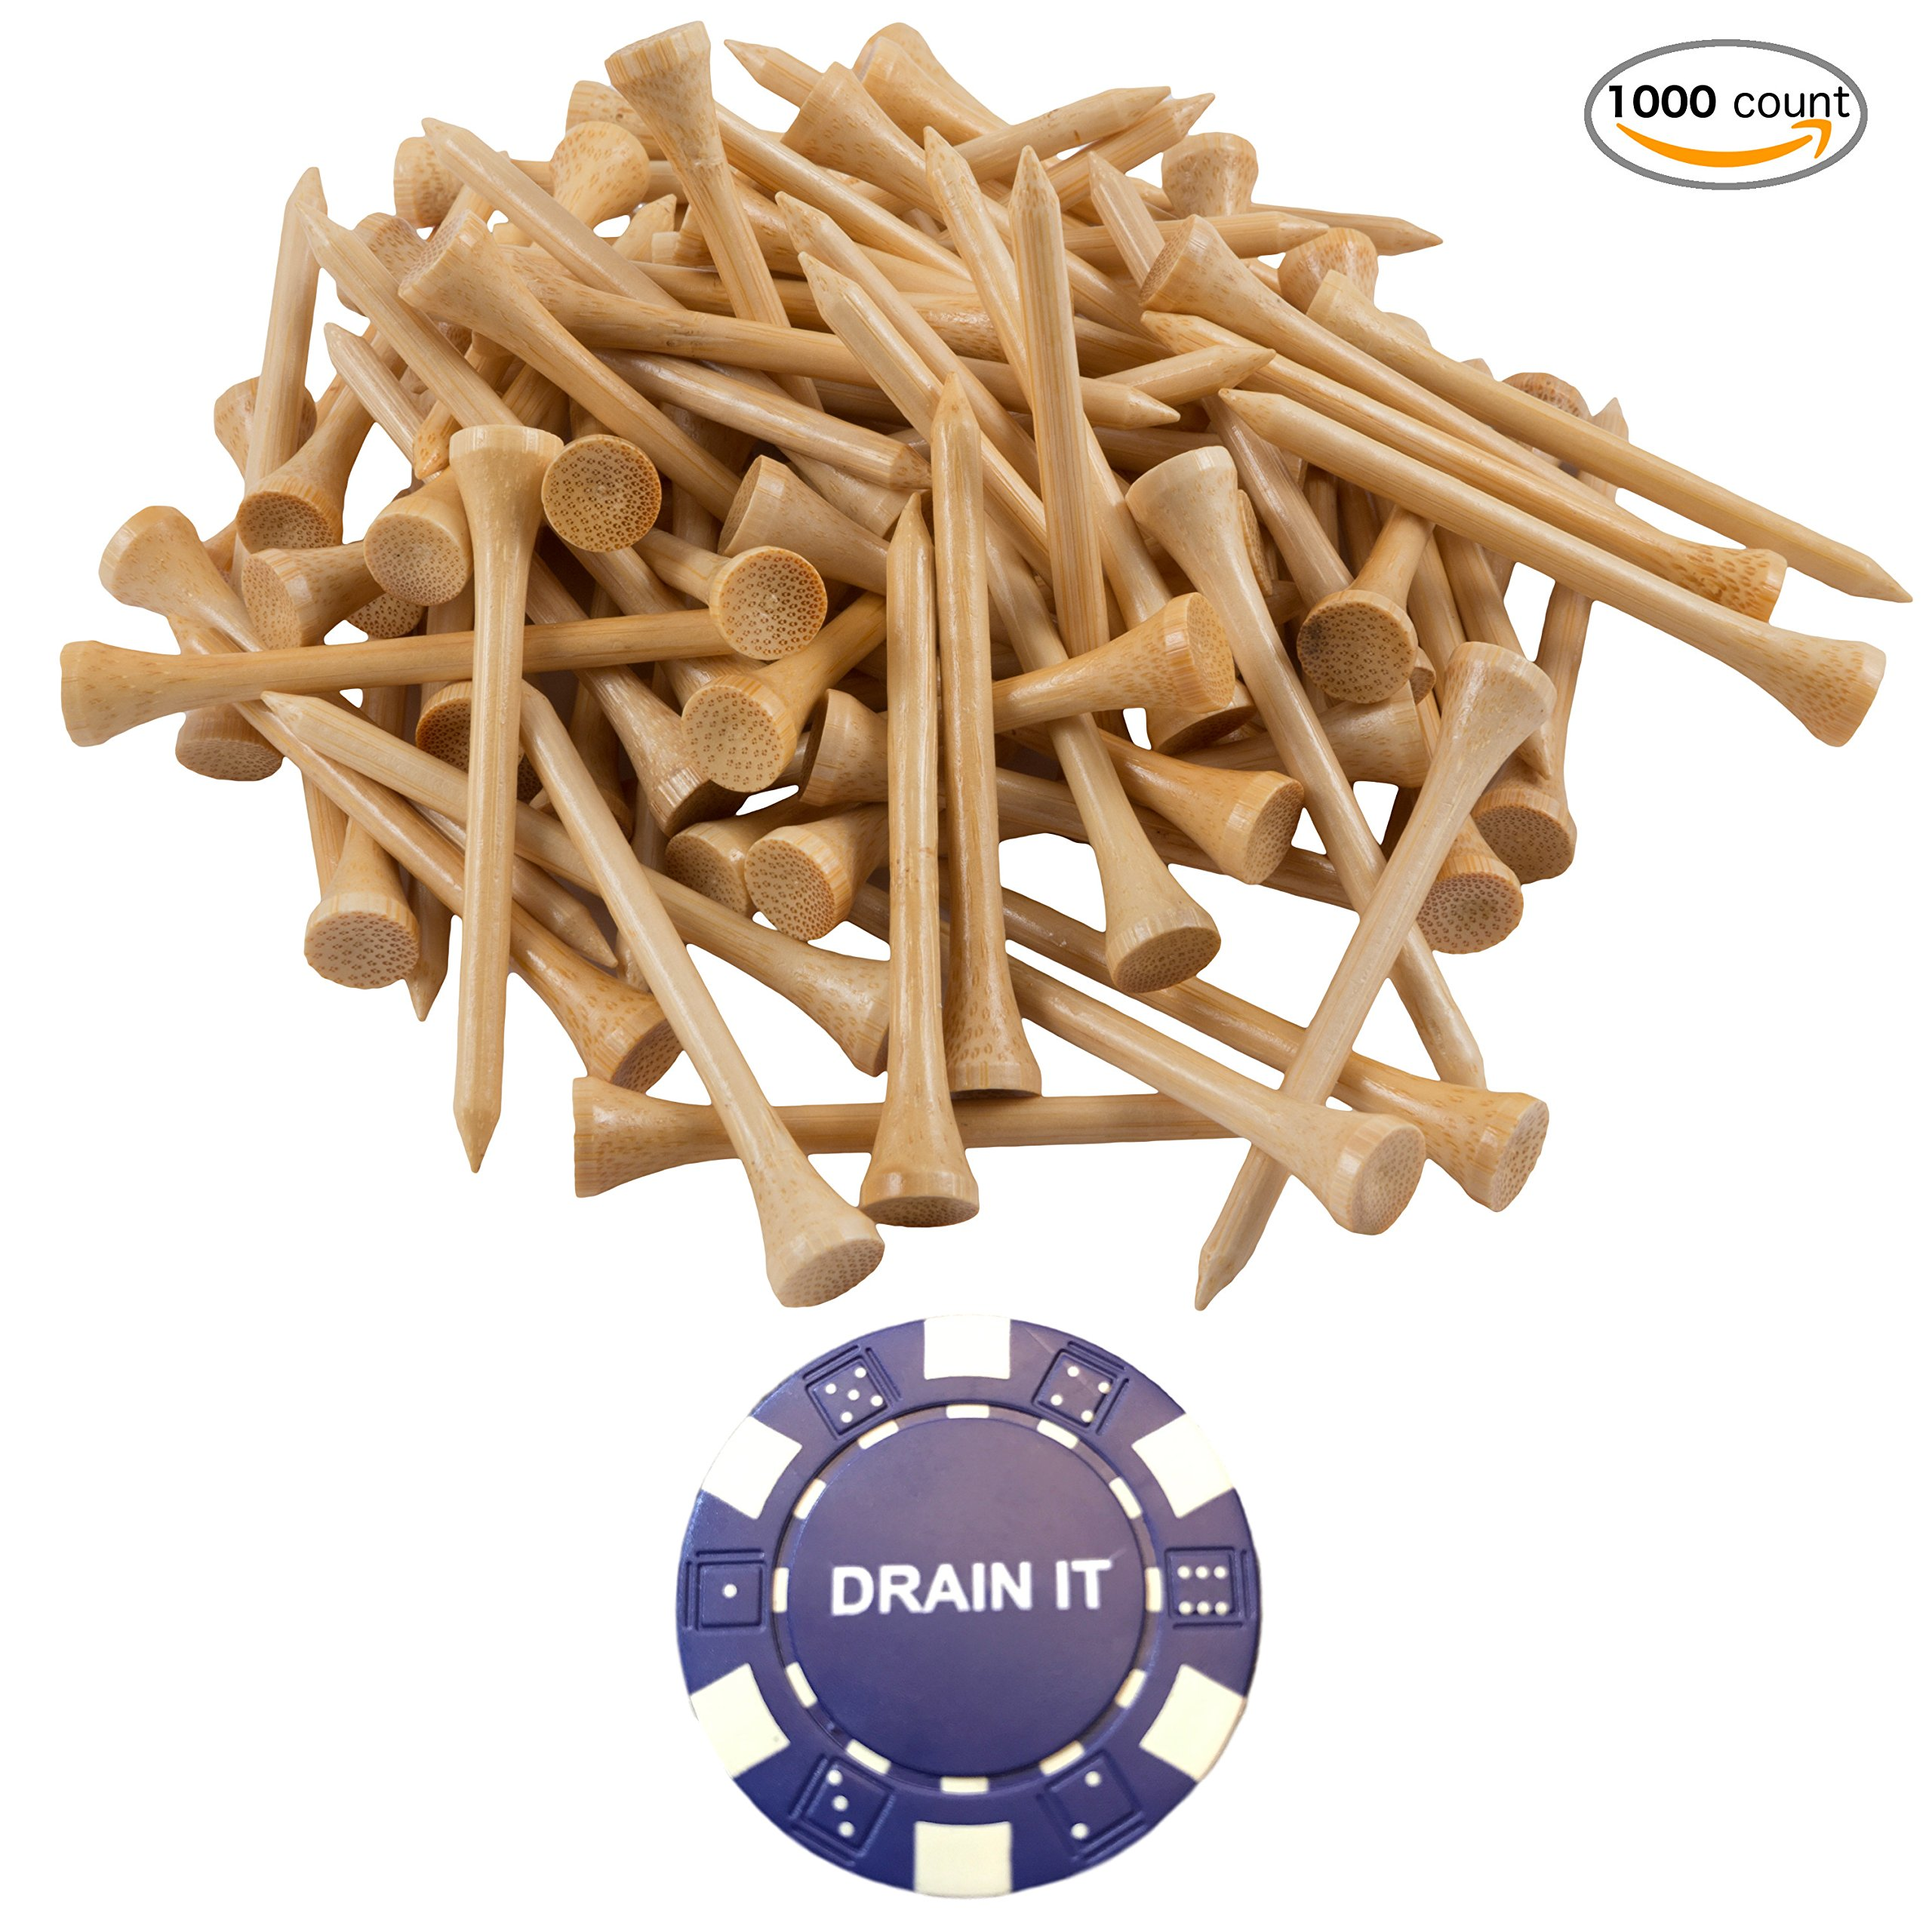 1000 Count Professional Bamboo Golf Tees 2-3/4 inch - Free Poker Chip Ball Marker - Stronger Than Wood Tees Biodegradable & Less Friction PGA Approved by Wedge Guys